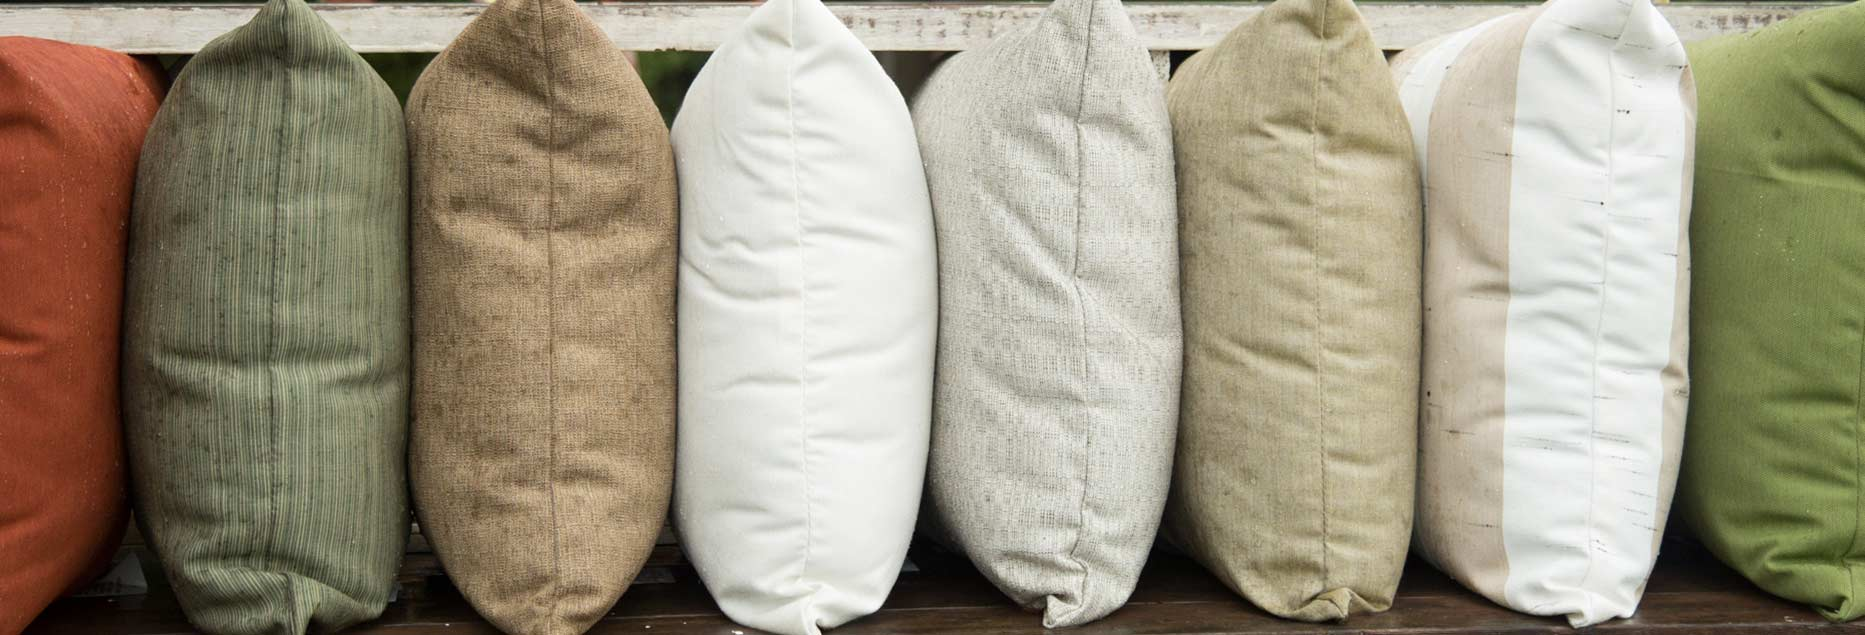 Shop Outdoor Pillows from DFOhome